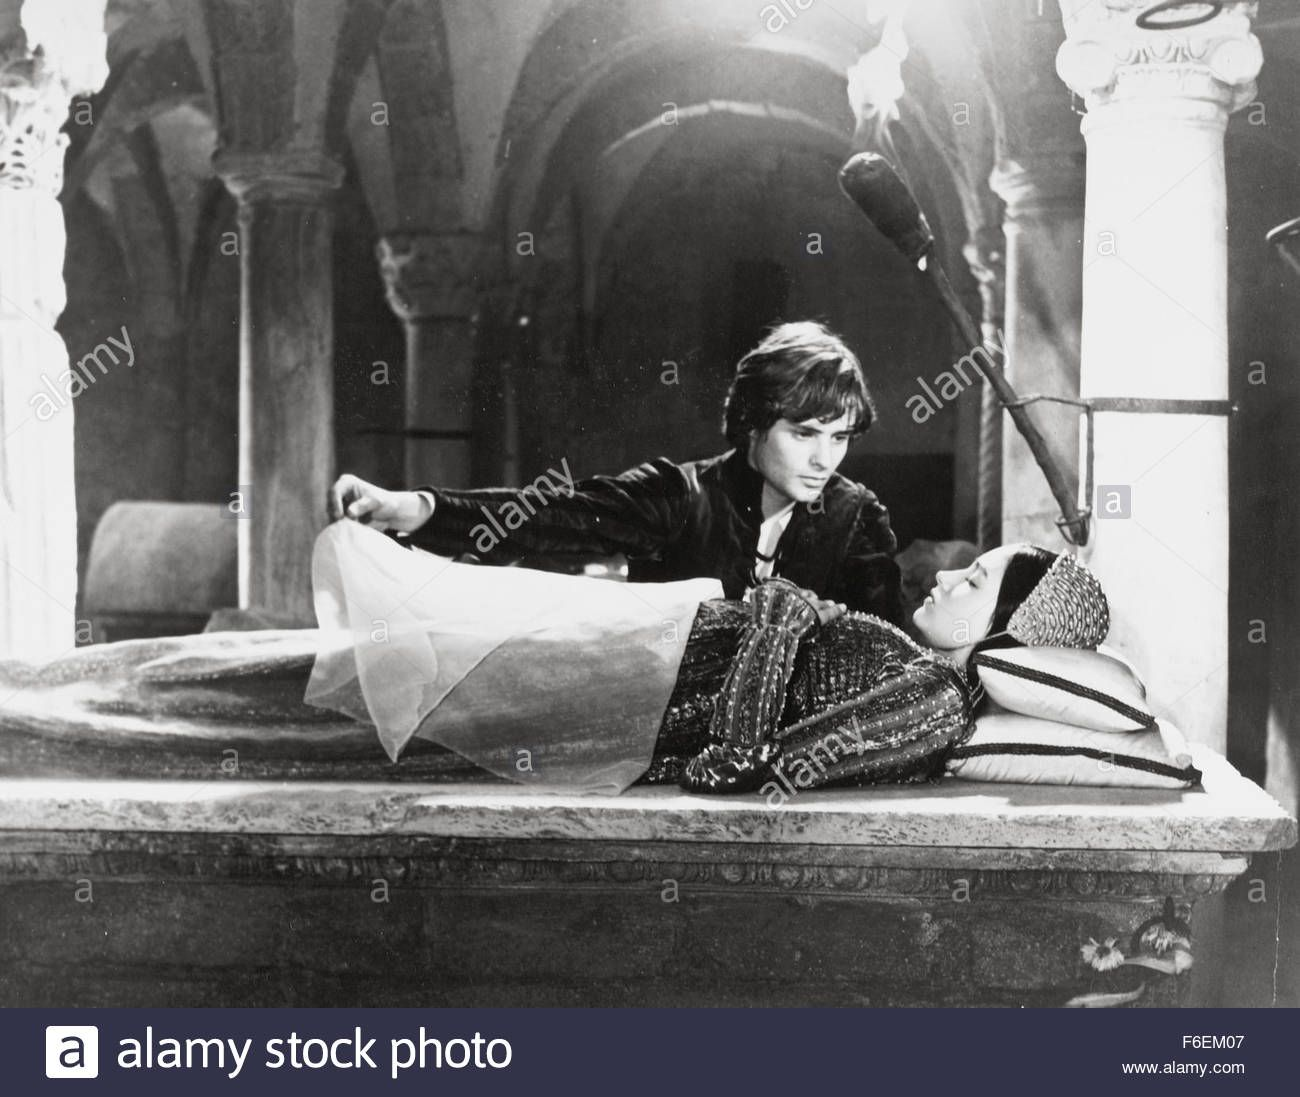 Download this stock image 1968 romeo and juliet 1968